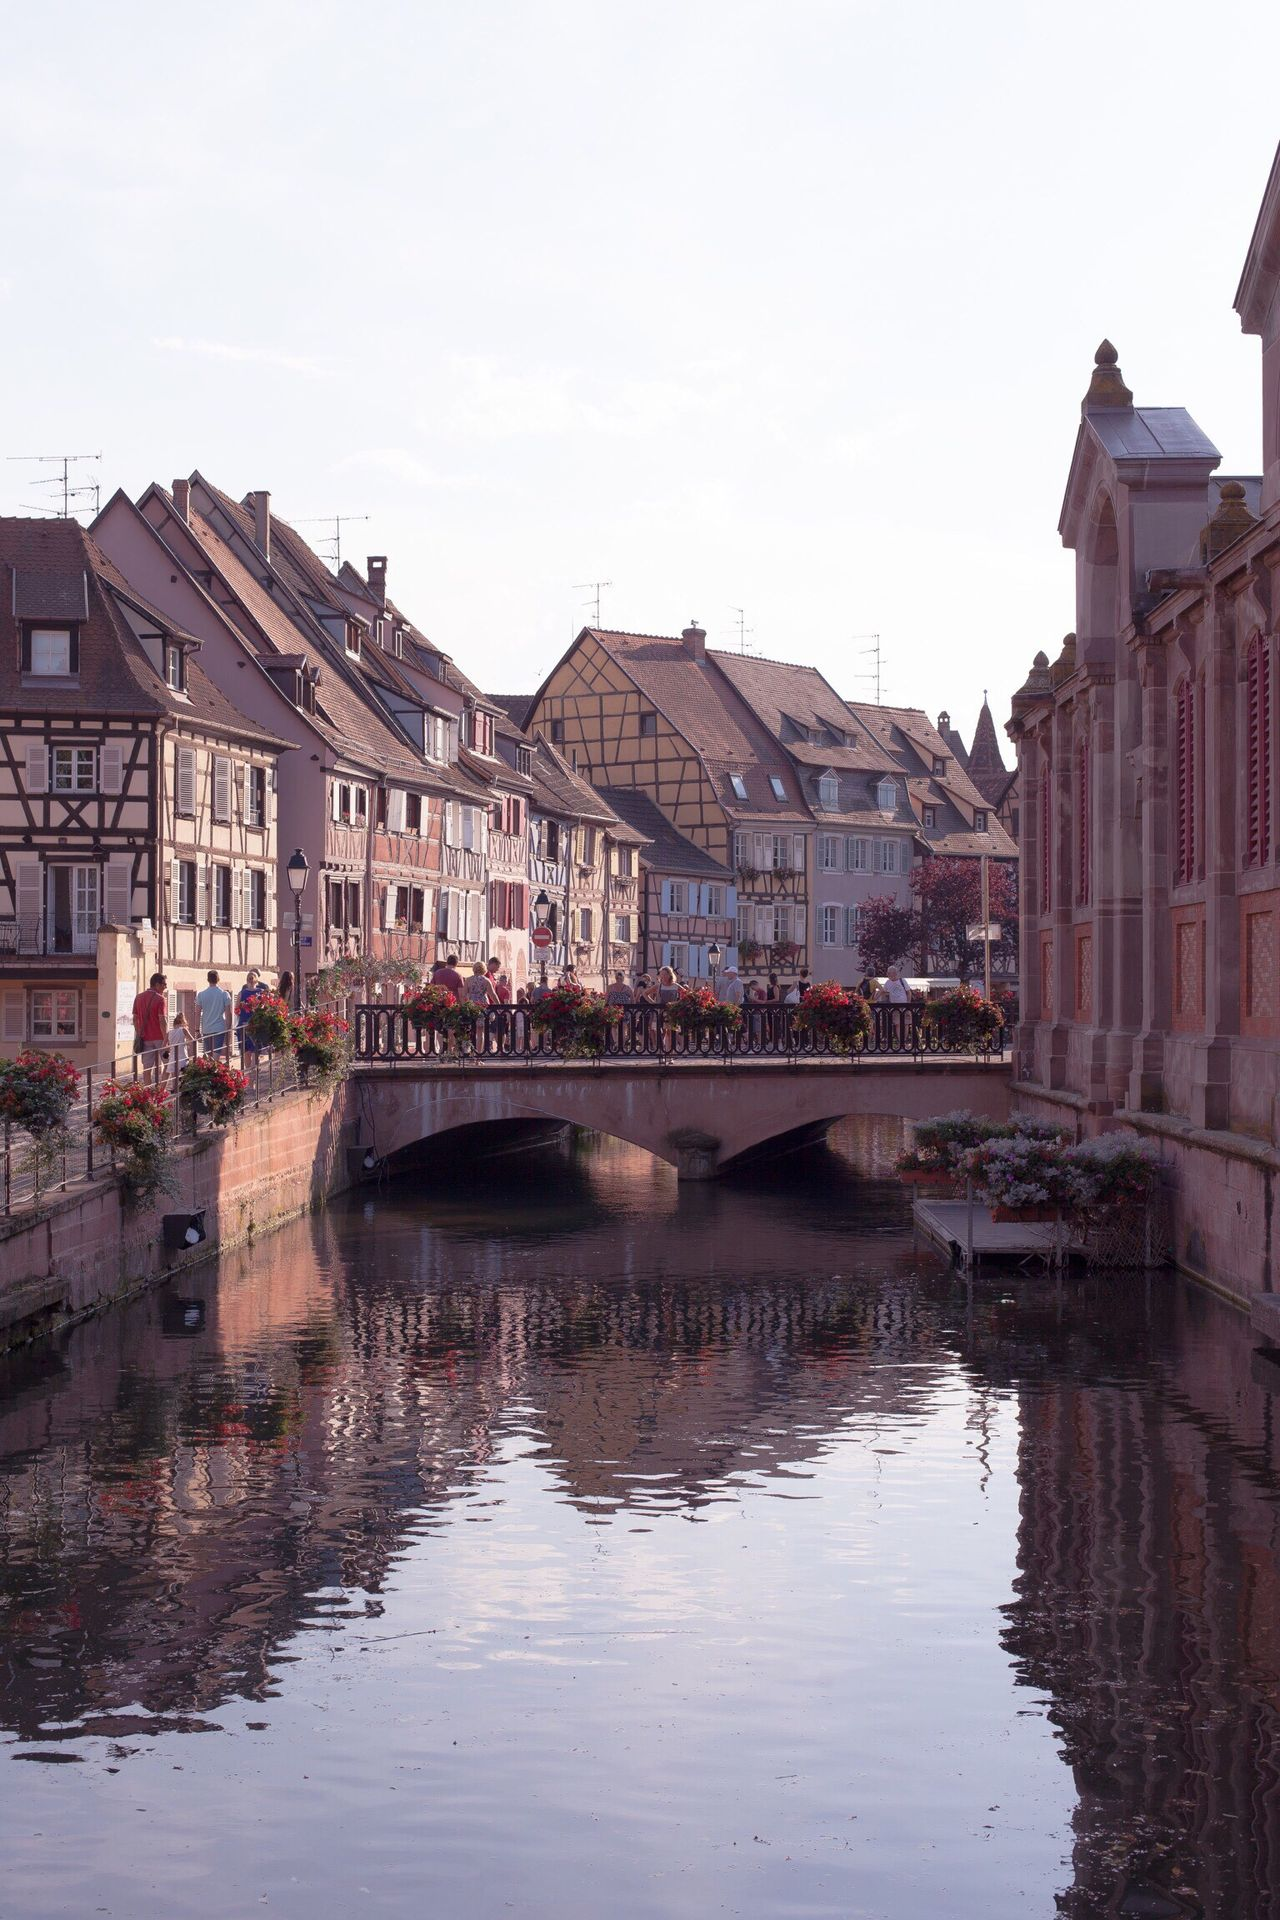 Colmar Architecture Reflection Building Exterior Built Structure Water City Waterfront River Outdoors Sky No People Day